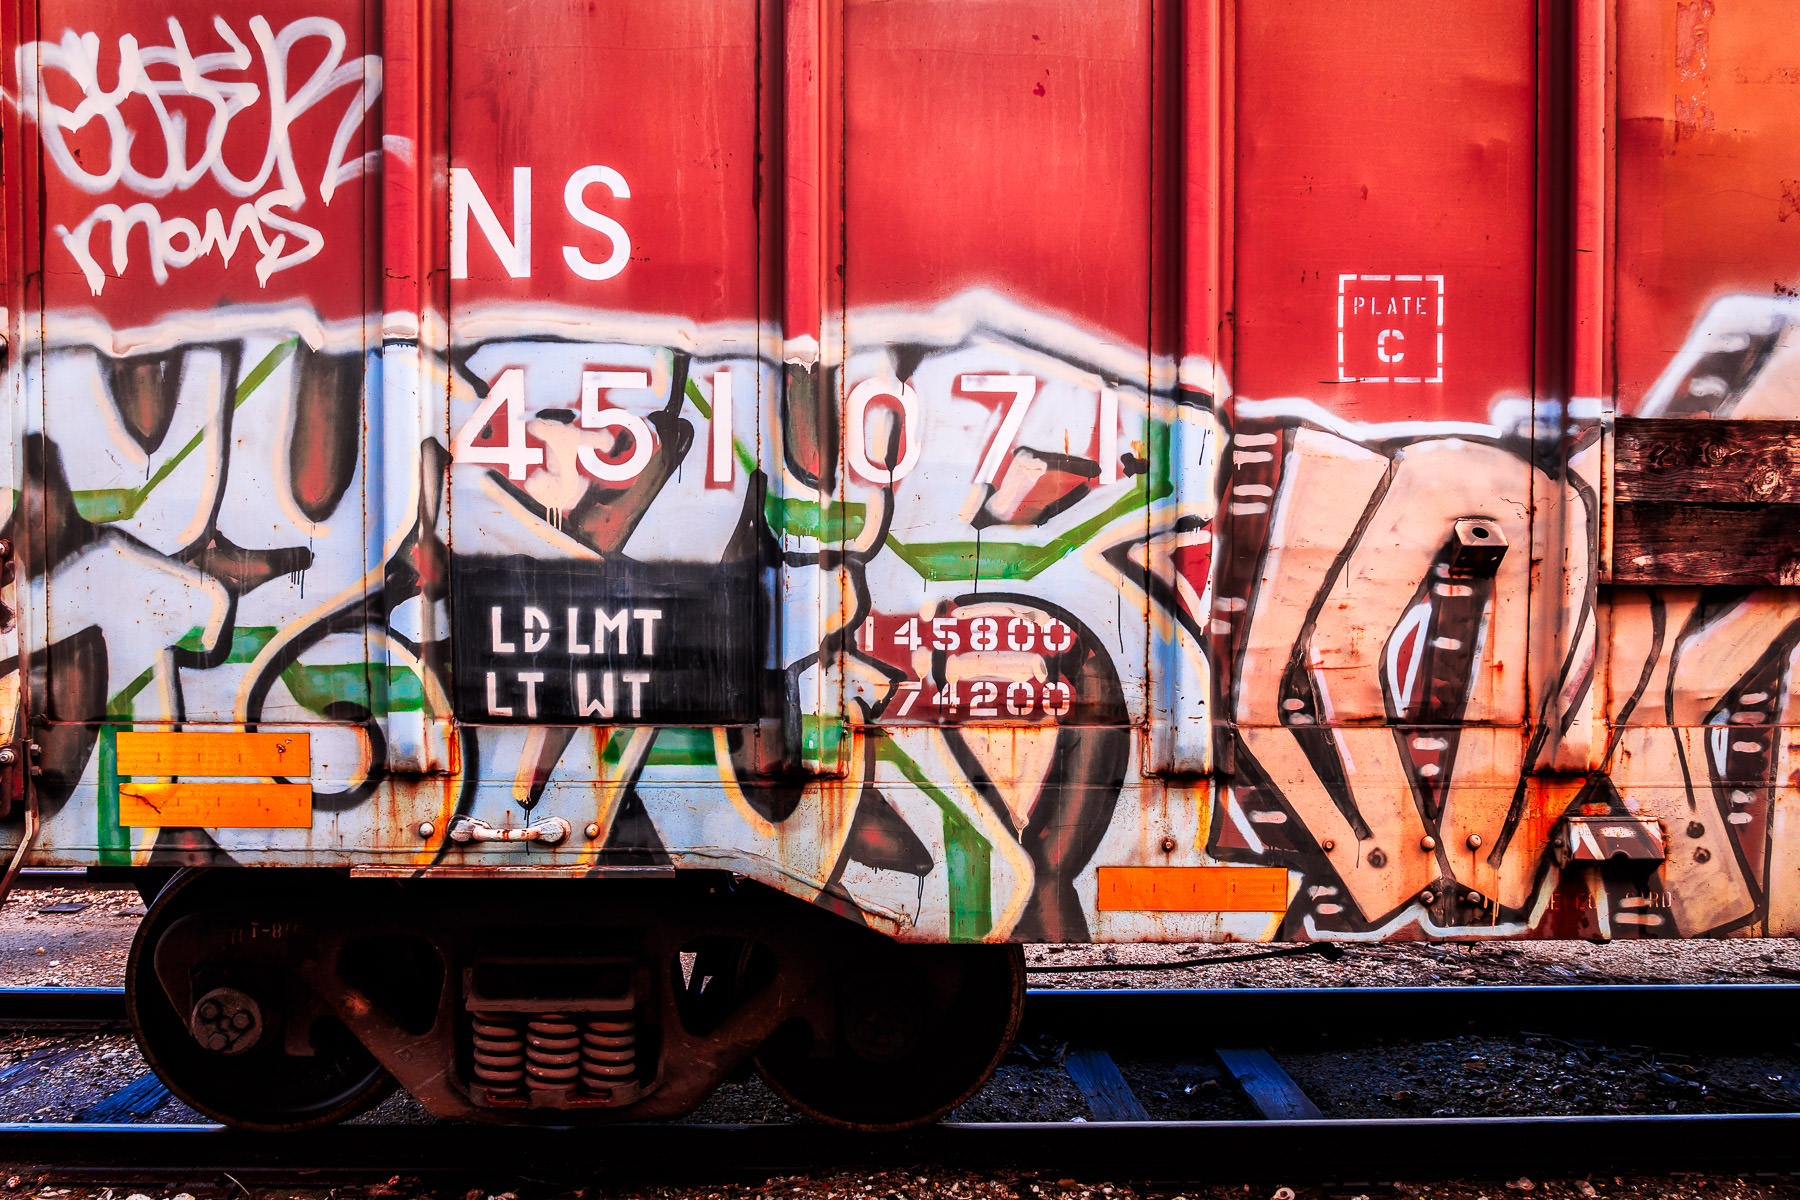 Graffiti on a railcar, spotted in Galveston, Texas.